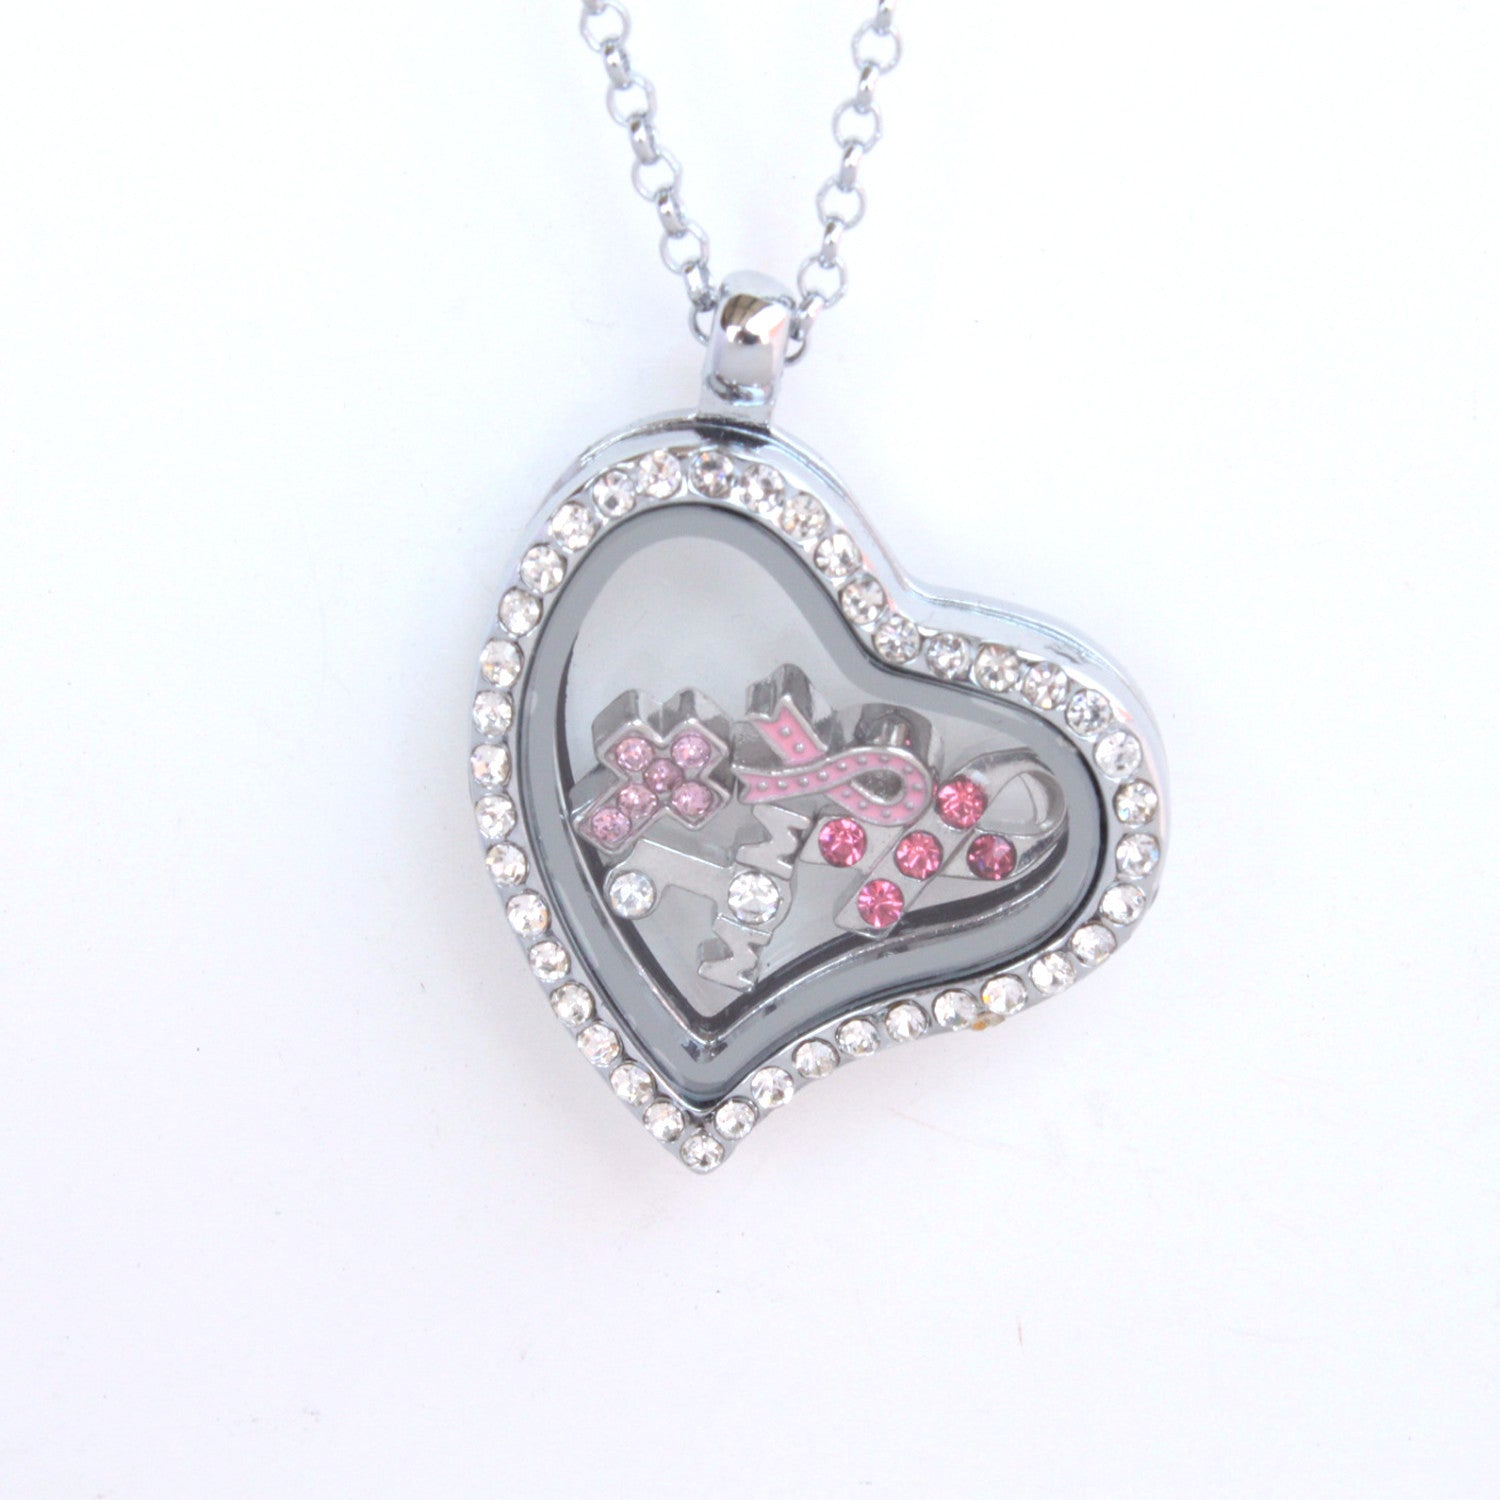 Floating Locket Necklace with 6 Mini Charms and Matching Chain (Silver Rhinestone Heart)